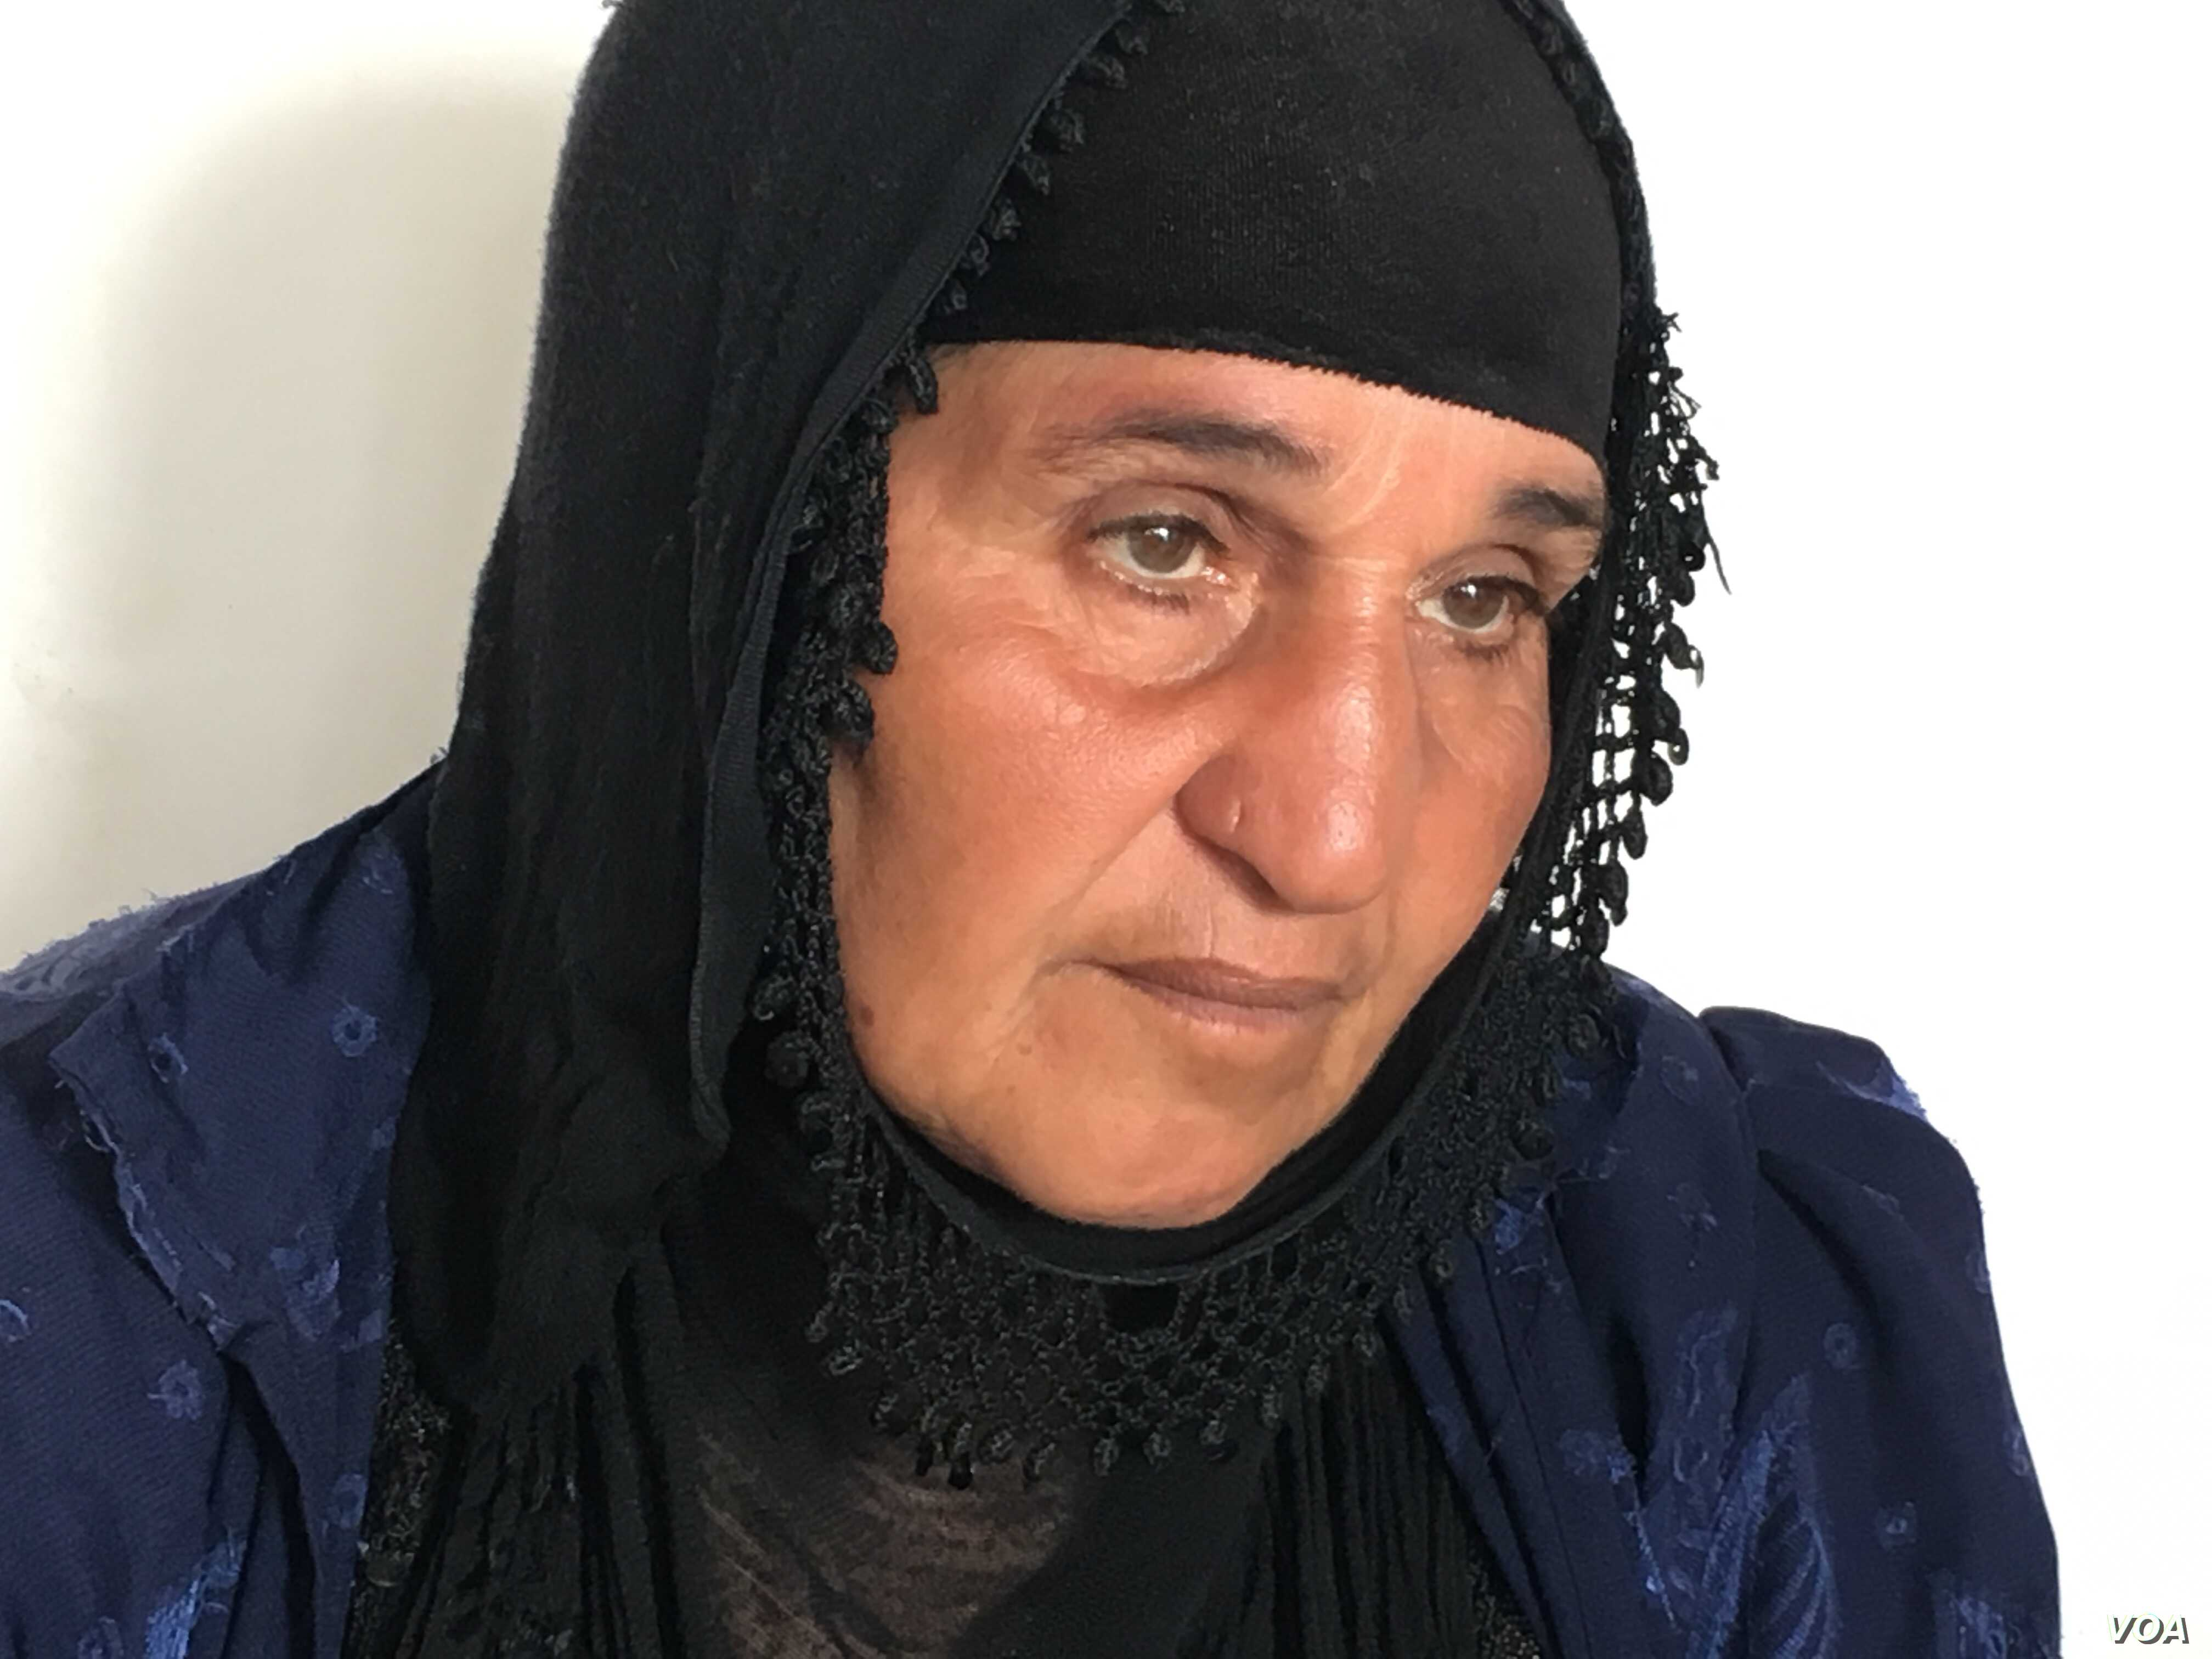 Iraqi village woman who has survived 13 years of war and 2 years under IS, now in a refugee camp outside Makhmour, Iraq, April 11, 2016. (S. Behn/VOA)